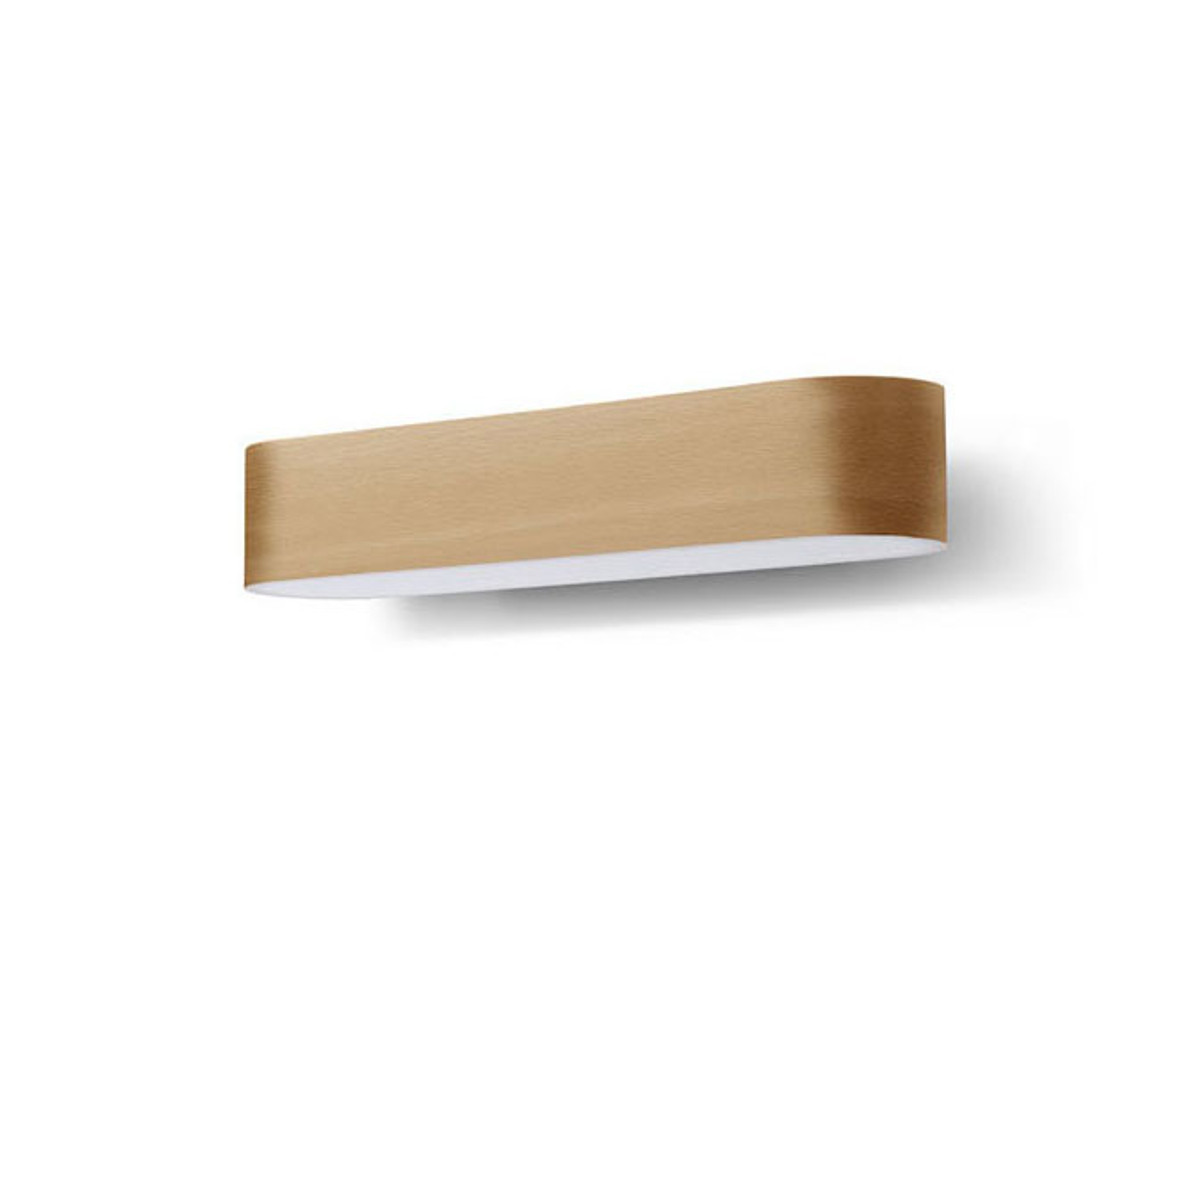 Buy The I Club Small Wall Sconce By Lzf Price Match Guarantee Free Shipping On All Orders From Lightopia